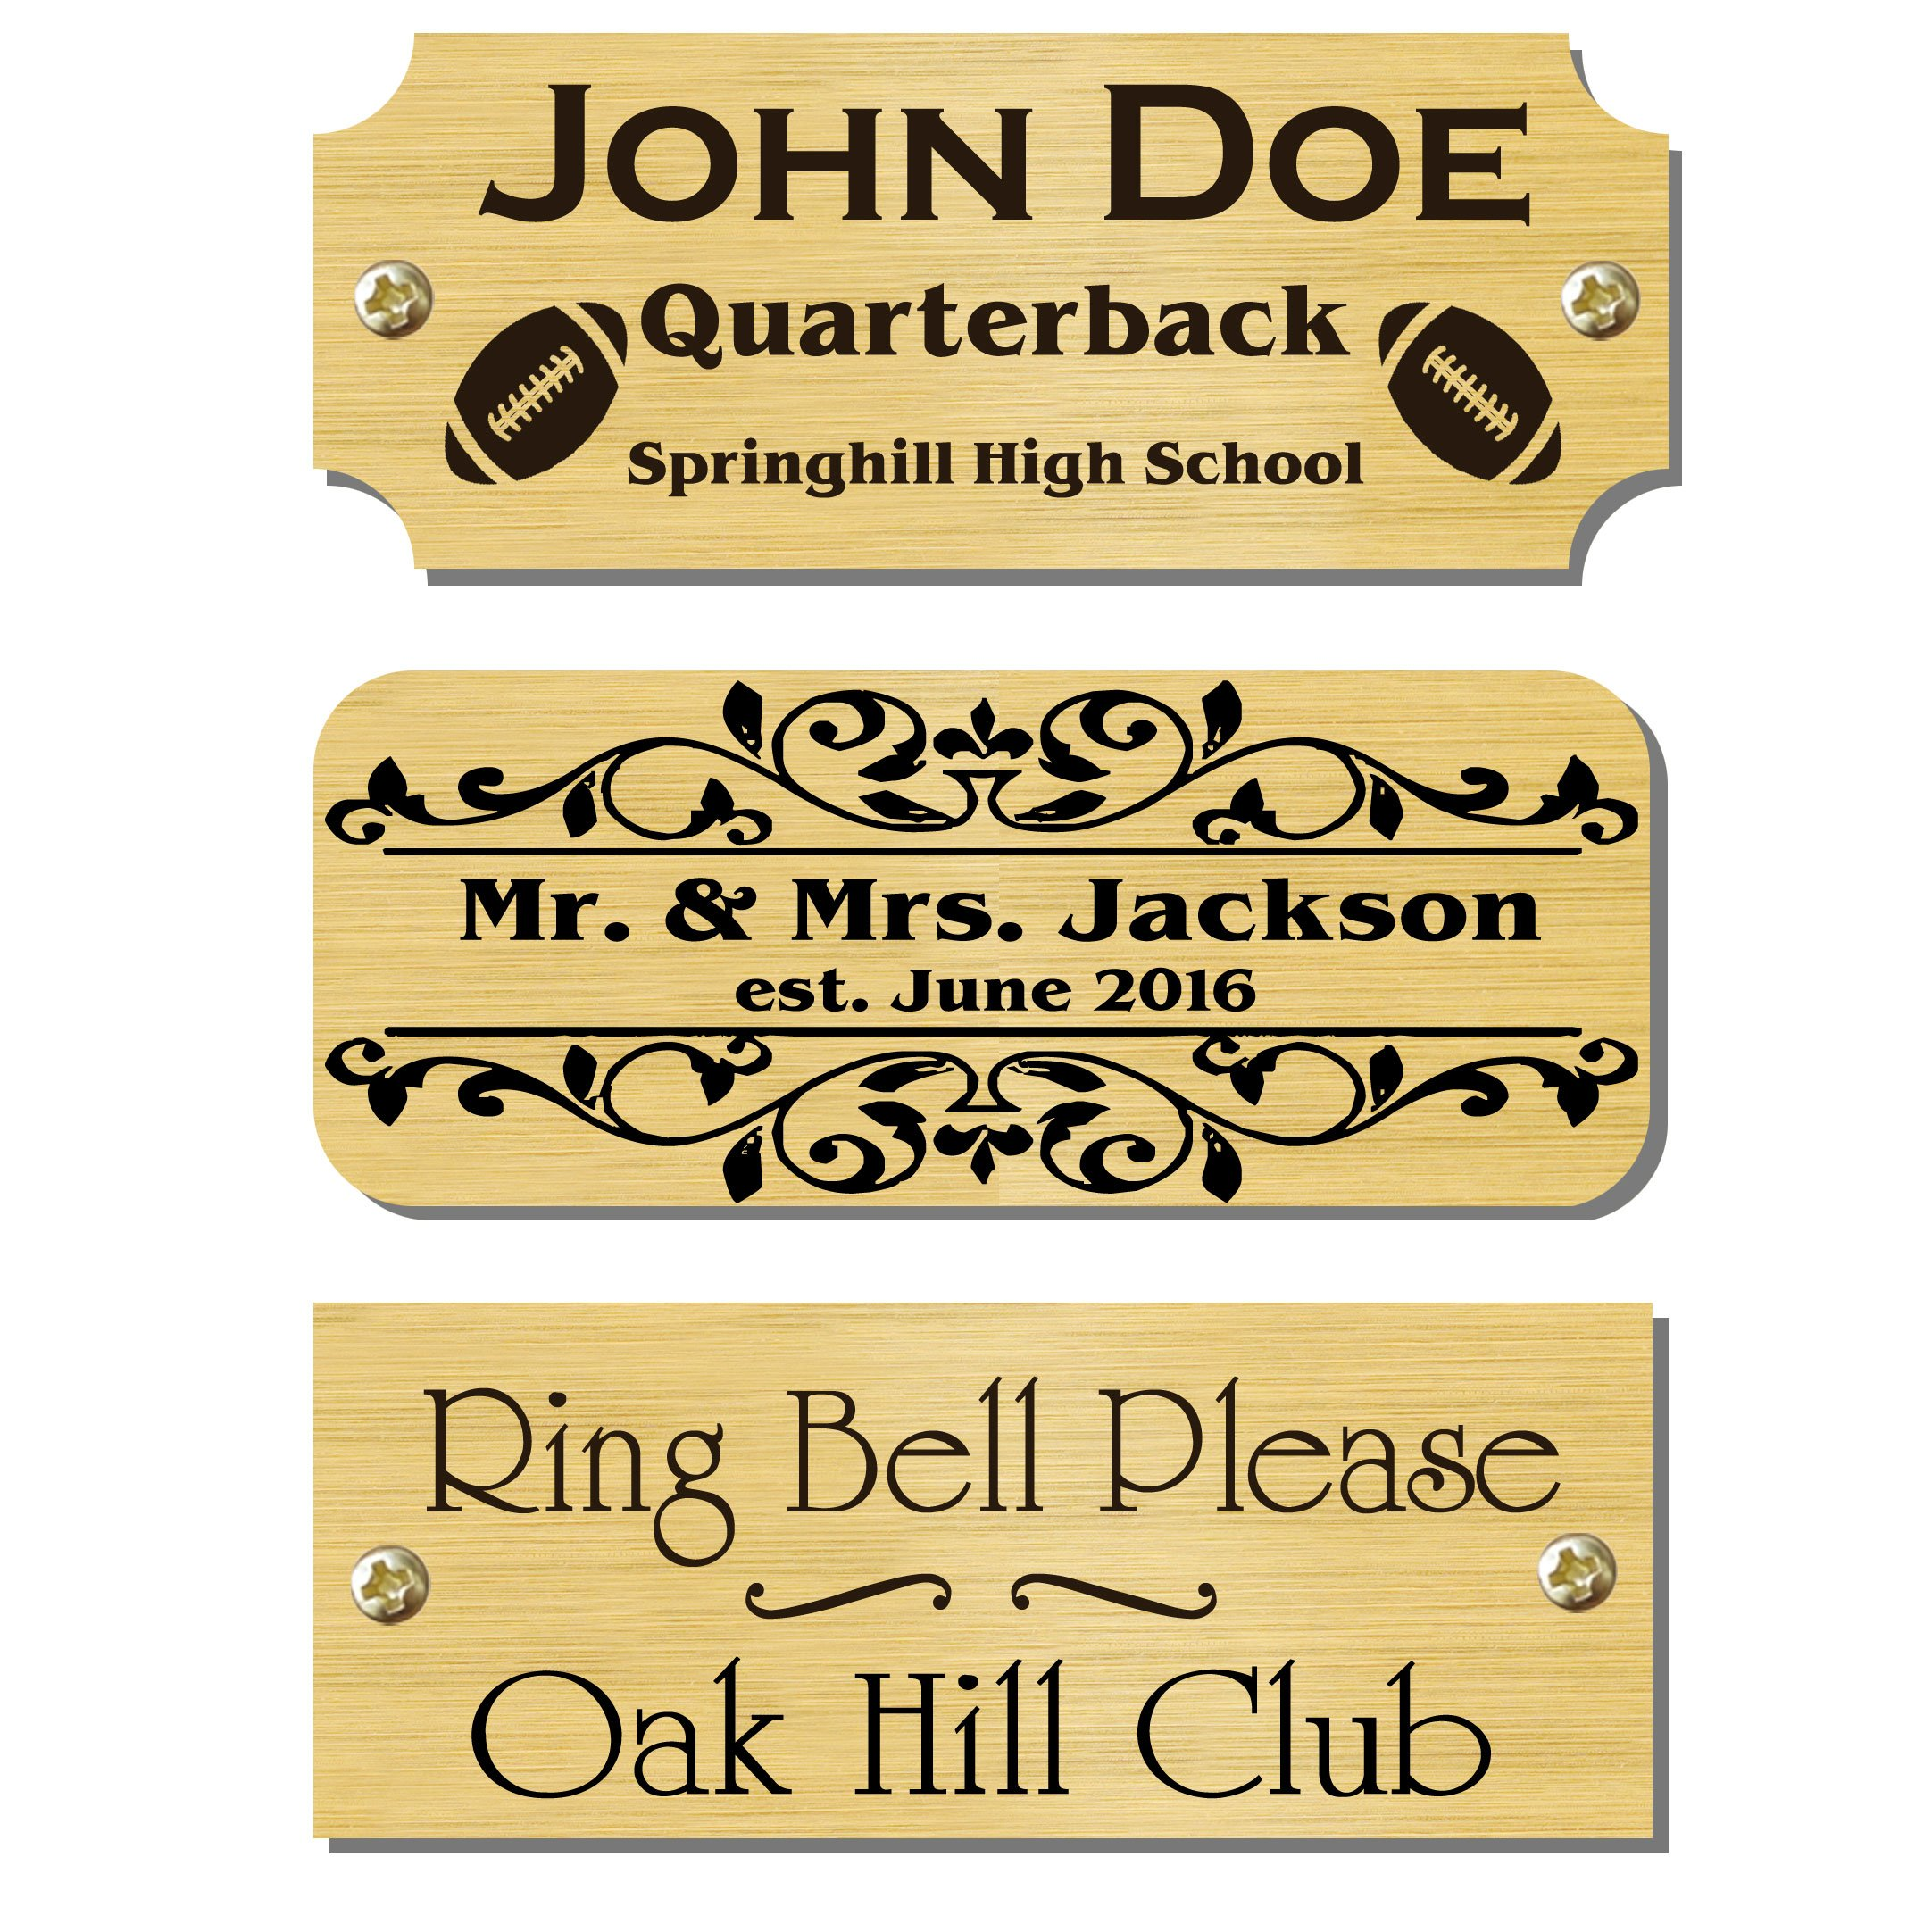 1'' H x 2.5'' W, Solid Brass Satin Gold Finish Plates, Custom Engraved Personalize Tag Black Text Made to Order Made in USA